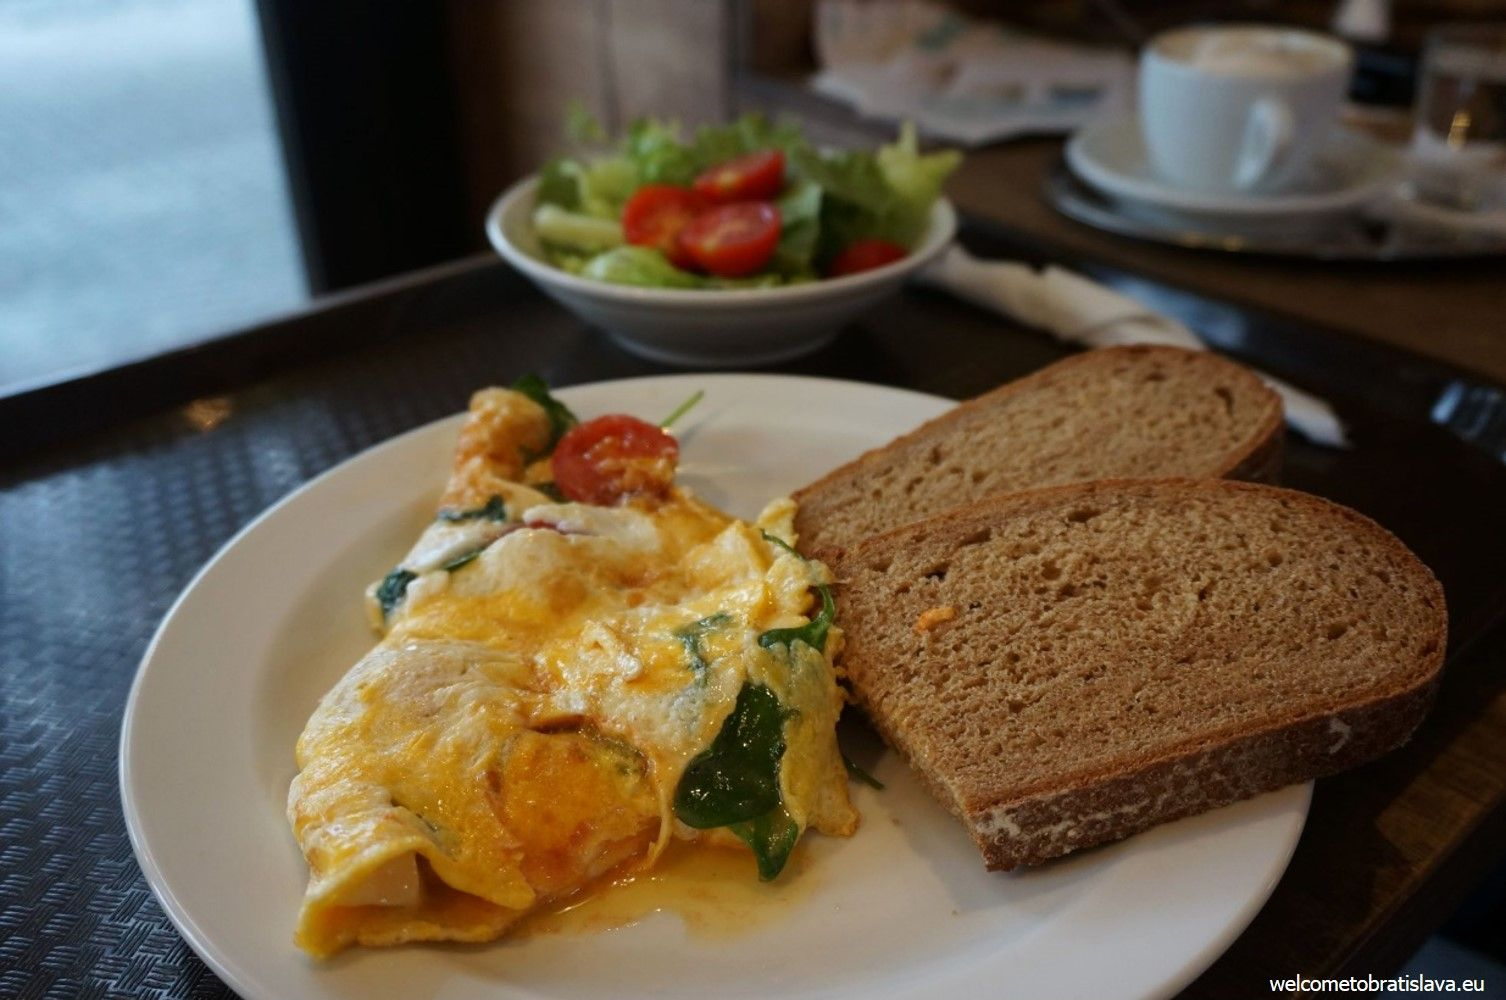 Omelet - always served with salad and bread